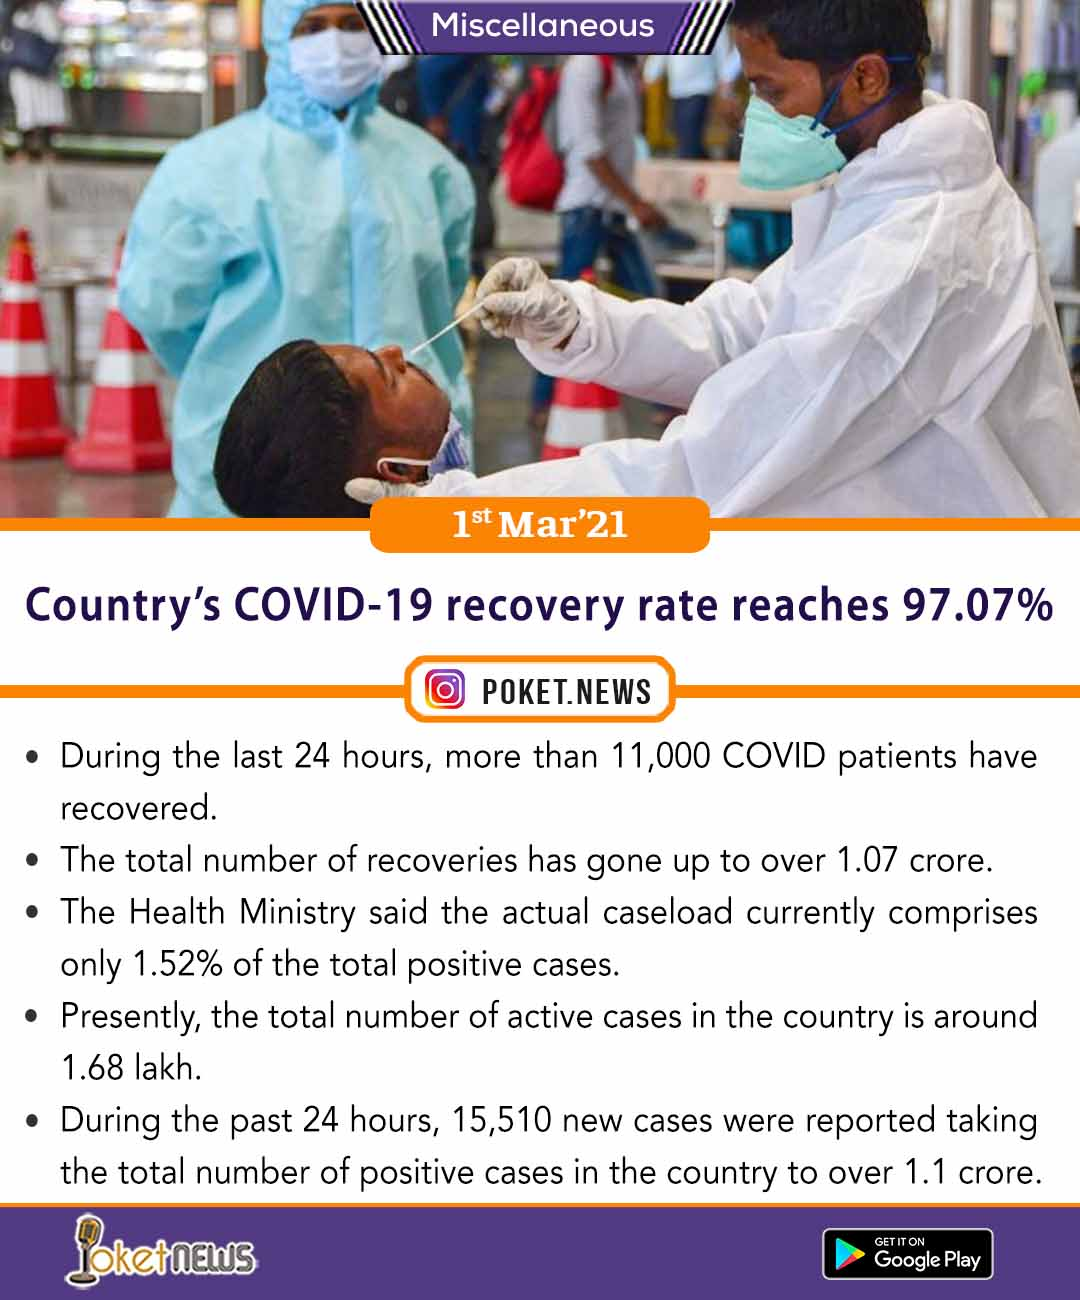 Country's COVID-19 recovery rate reaches 97.07%